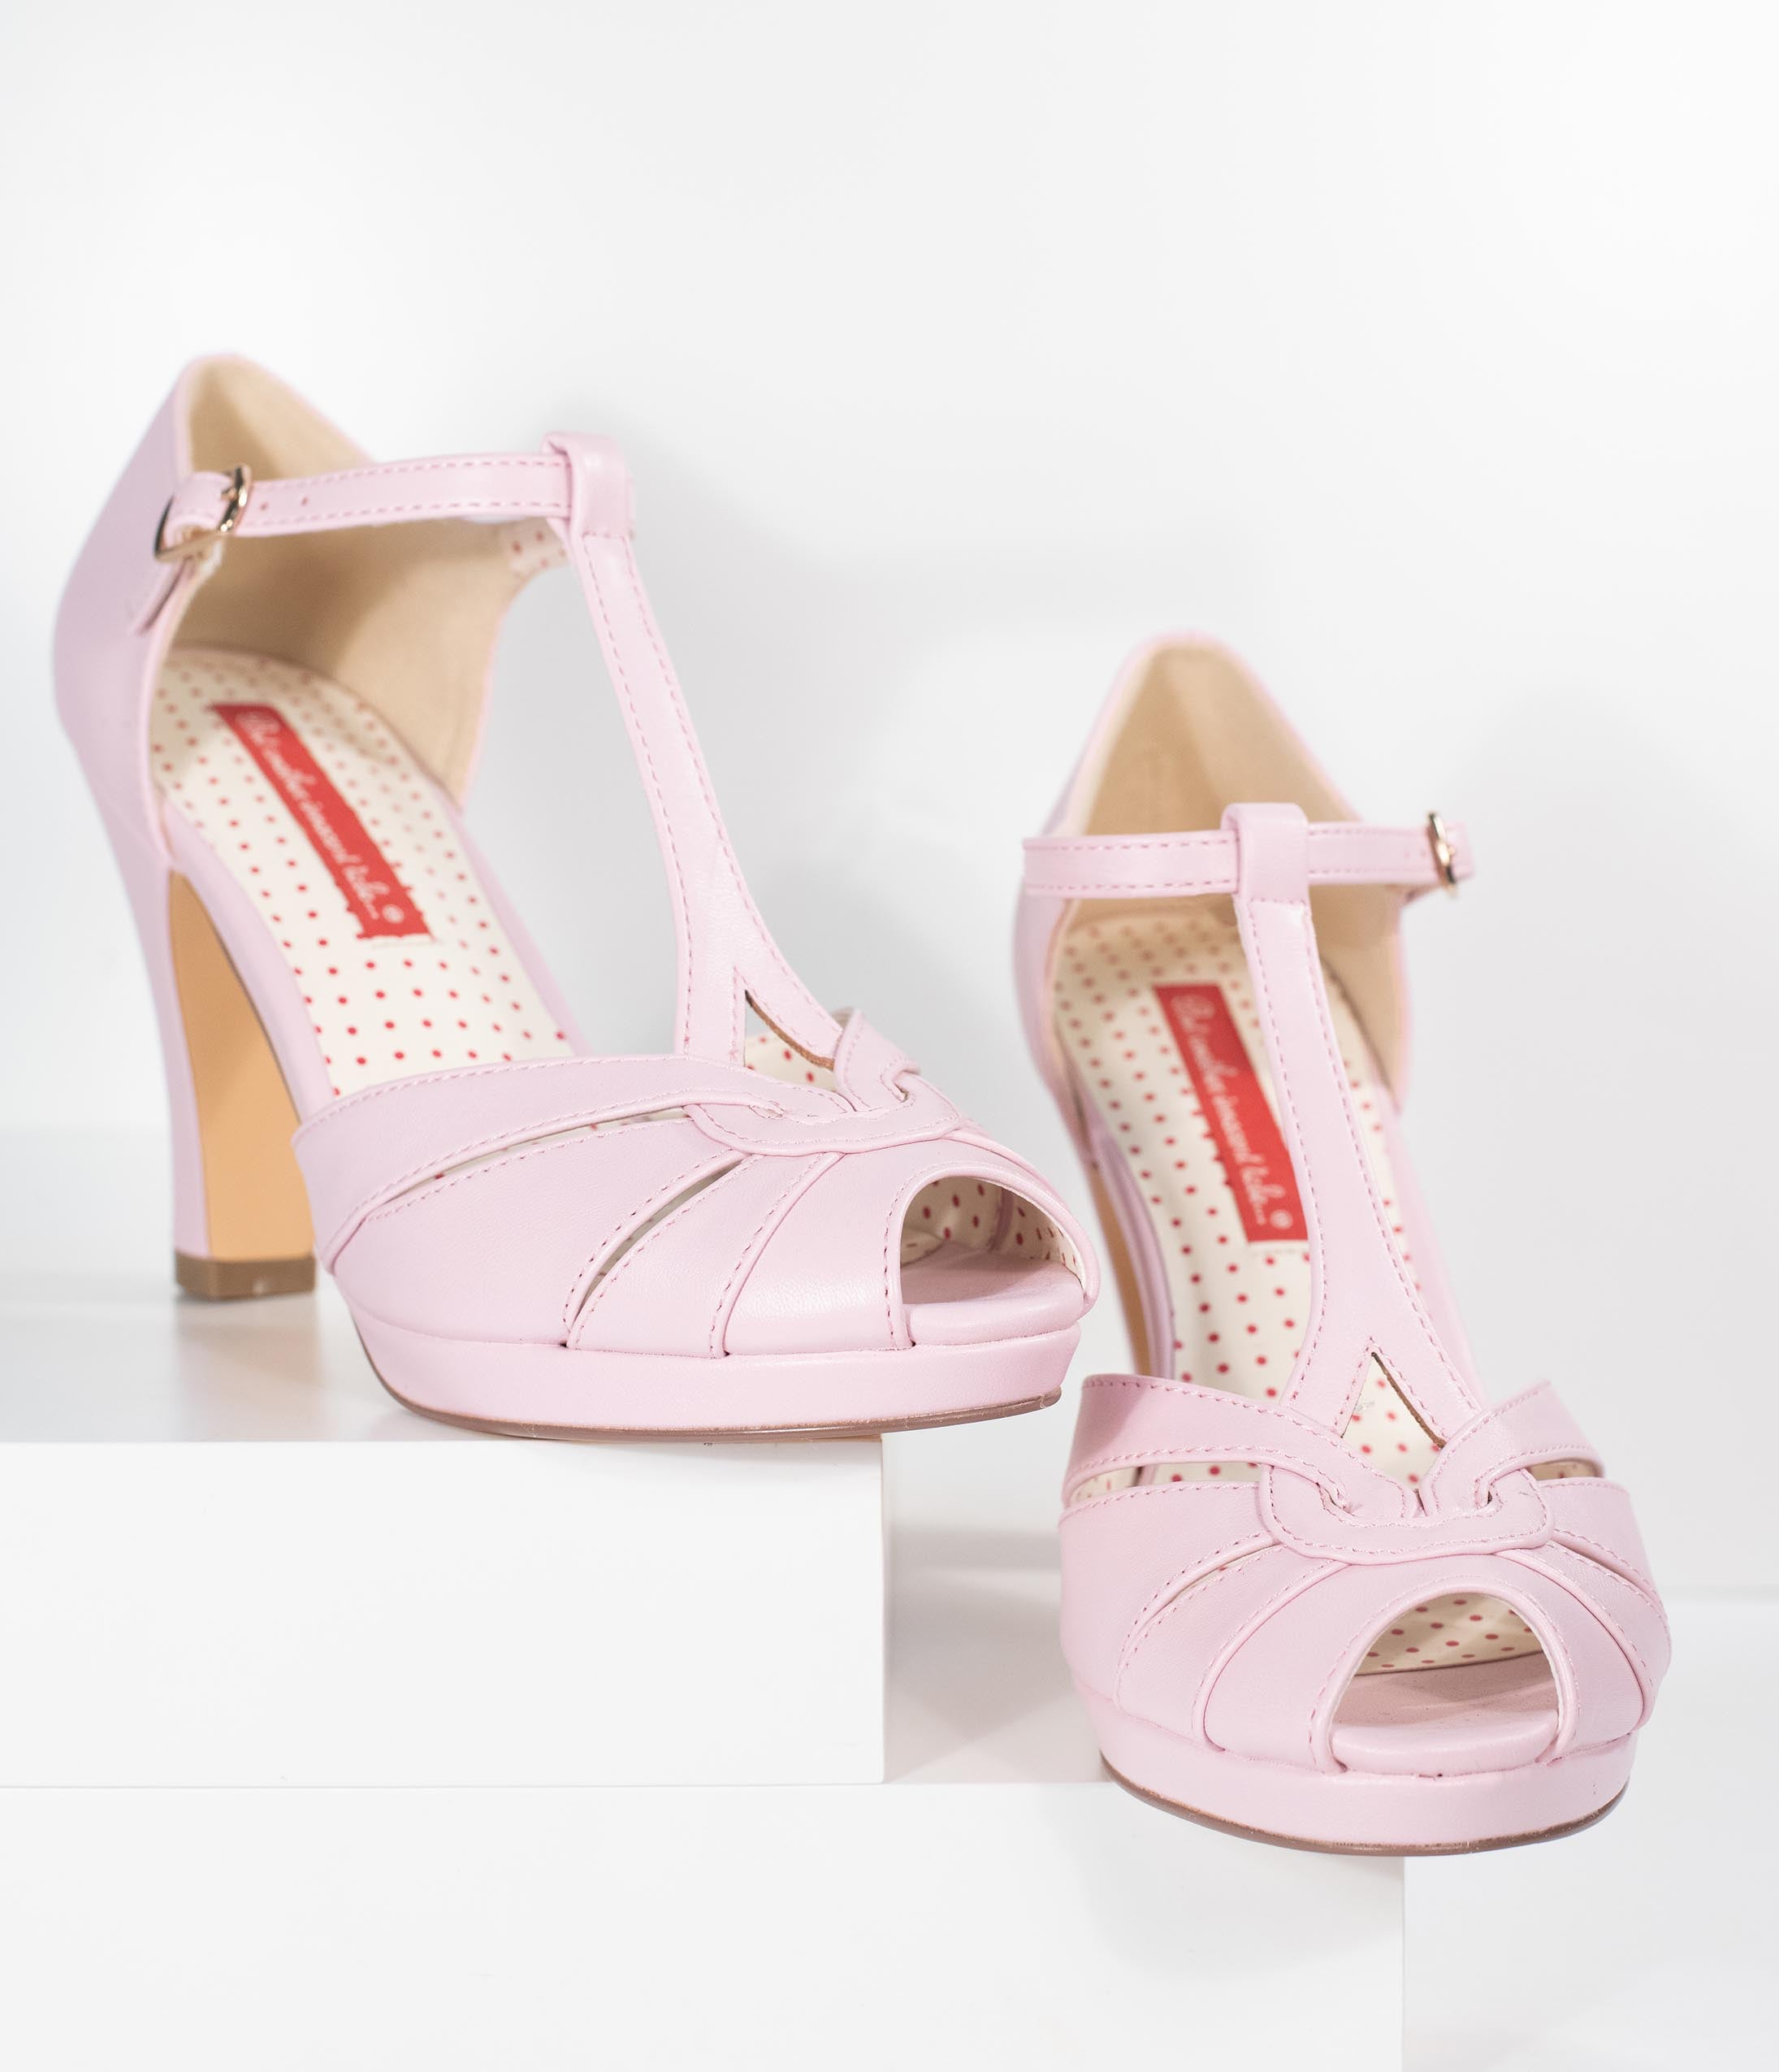 1940s Womens Footwear B.a.i.t. Pale Pink Leatherette Peep Toe T-Strap Lacey Heels $76.00 AT vintagedancer.com